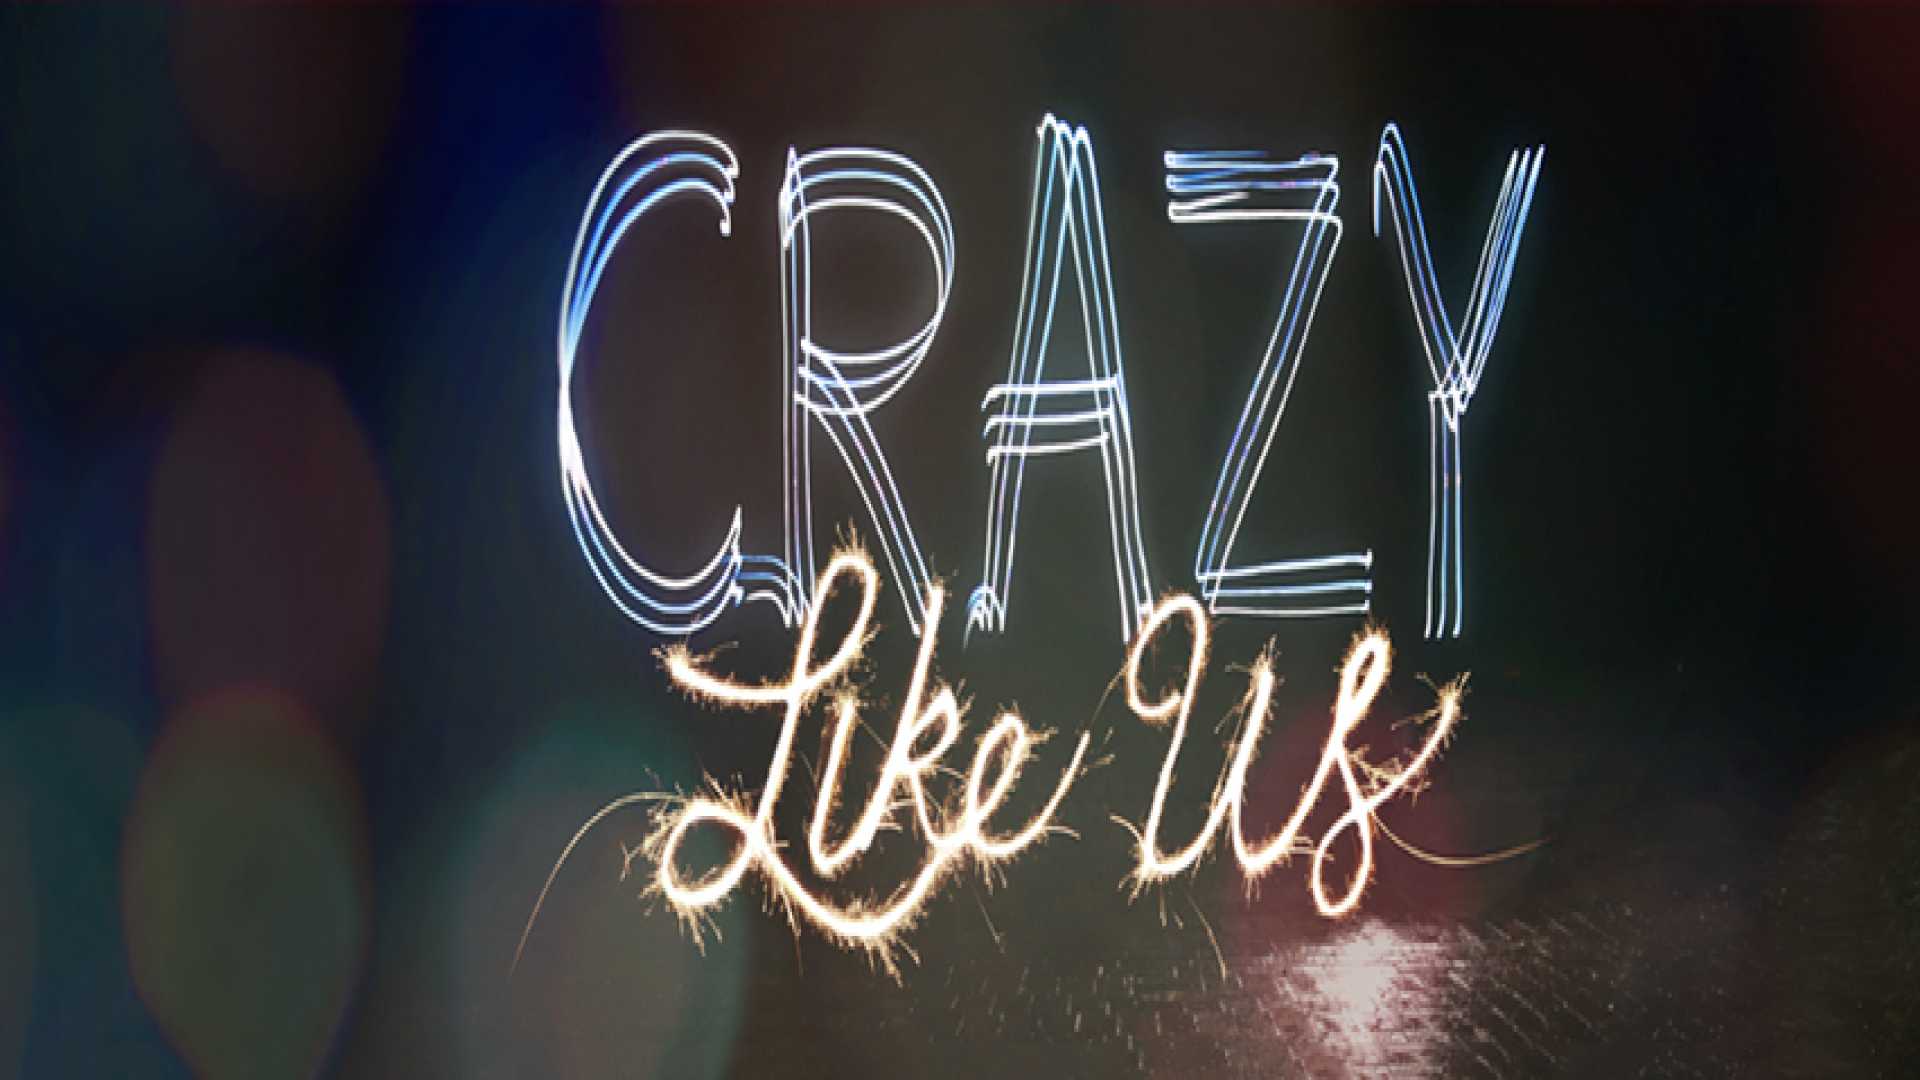 Crazy-Like-Us-1920x1080